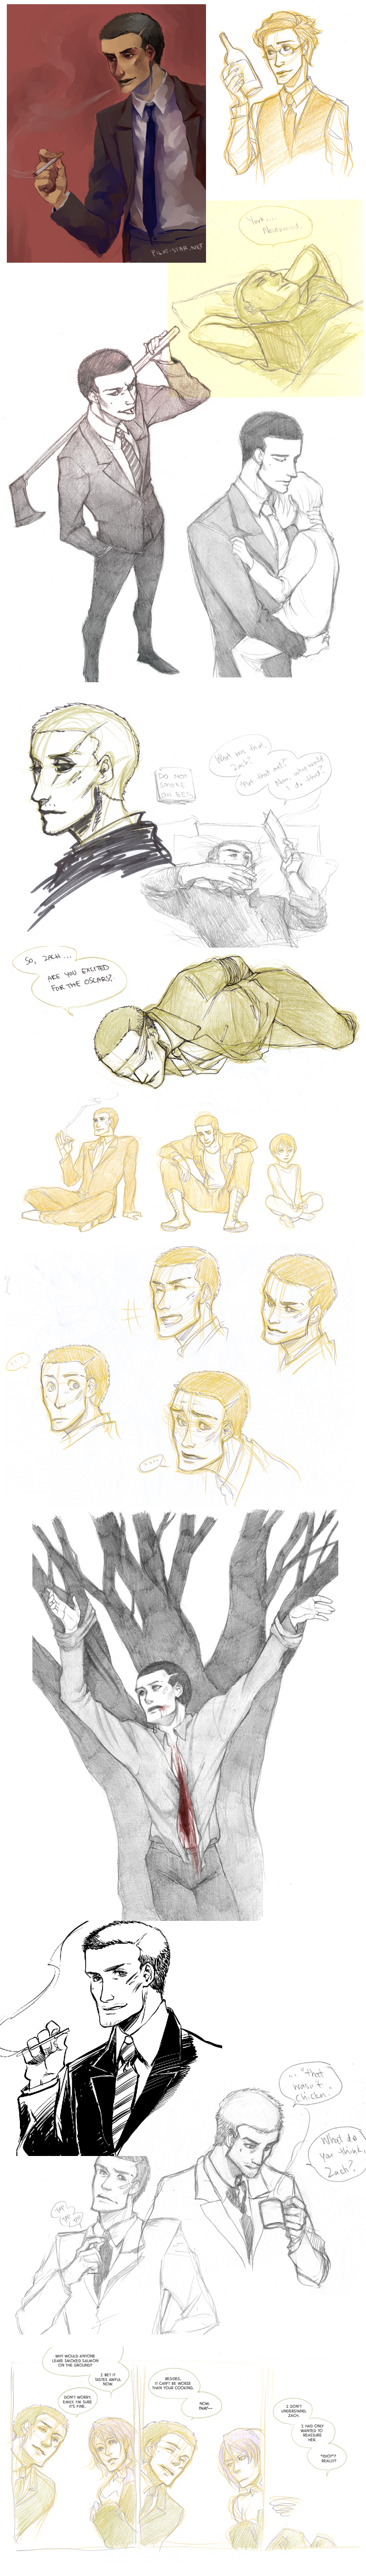 Deadly Premonition Sketchdump (contains spoilers) by nuu